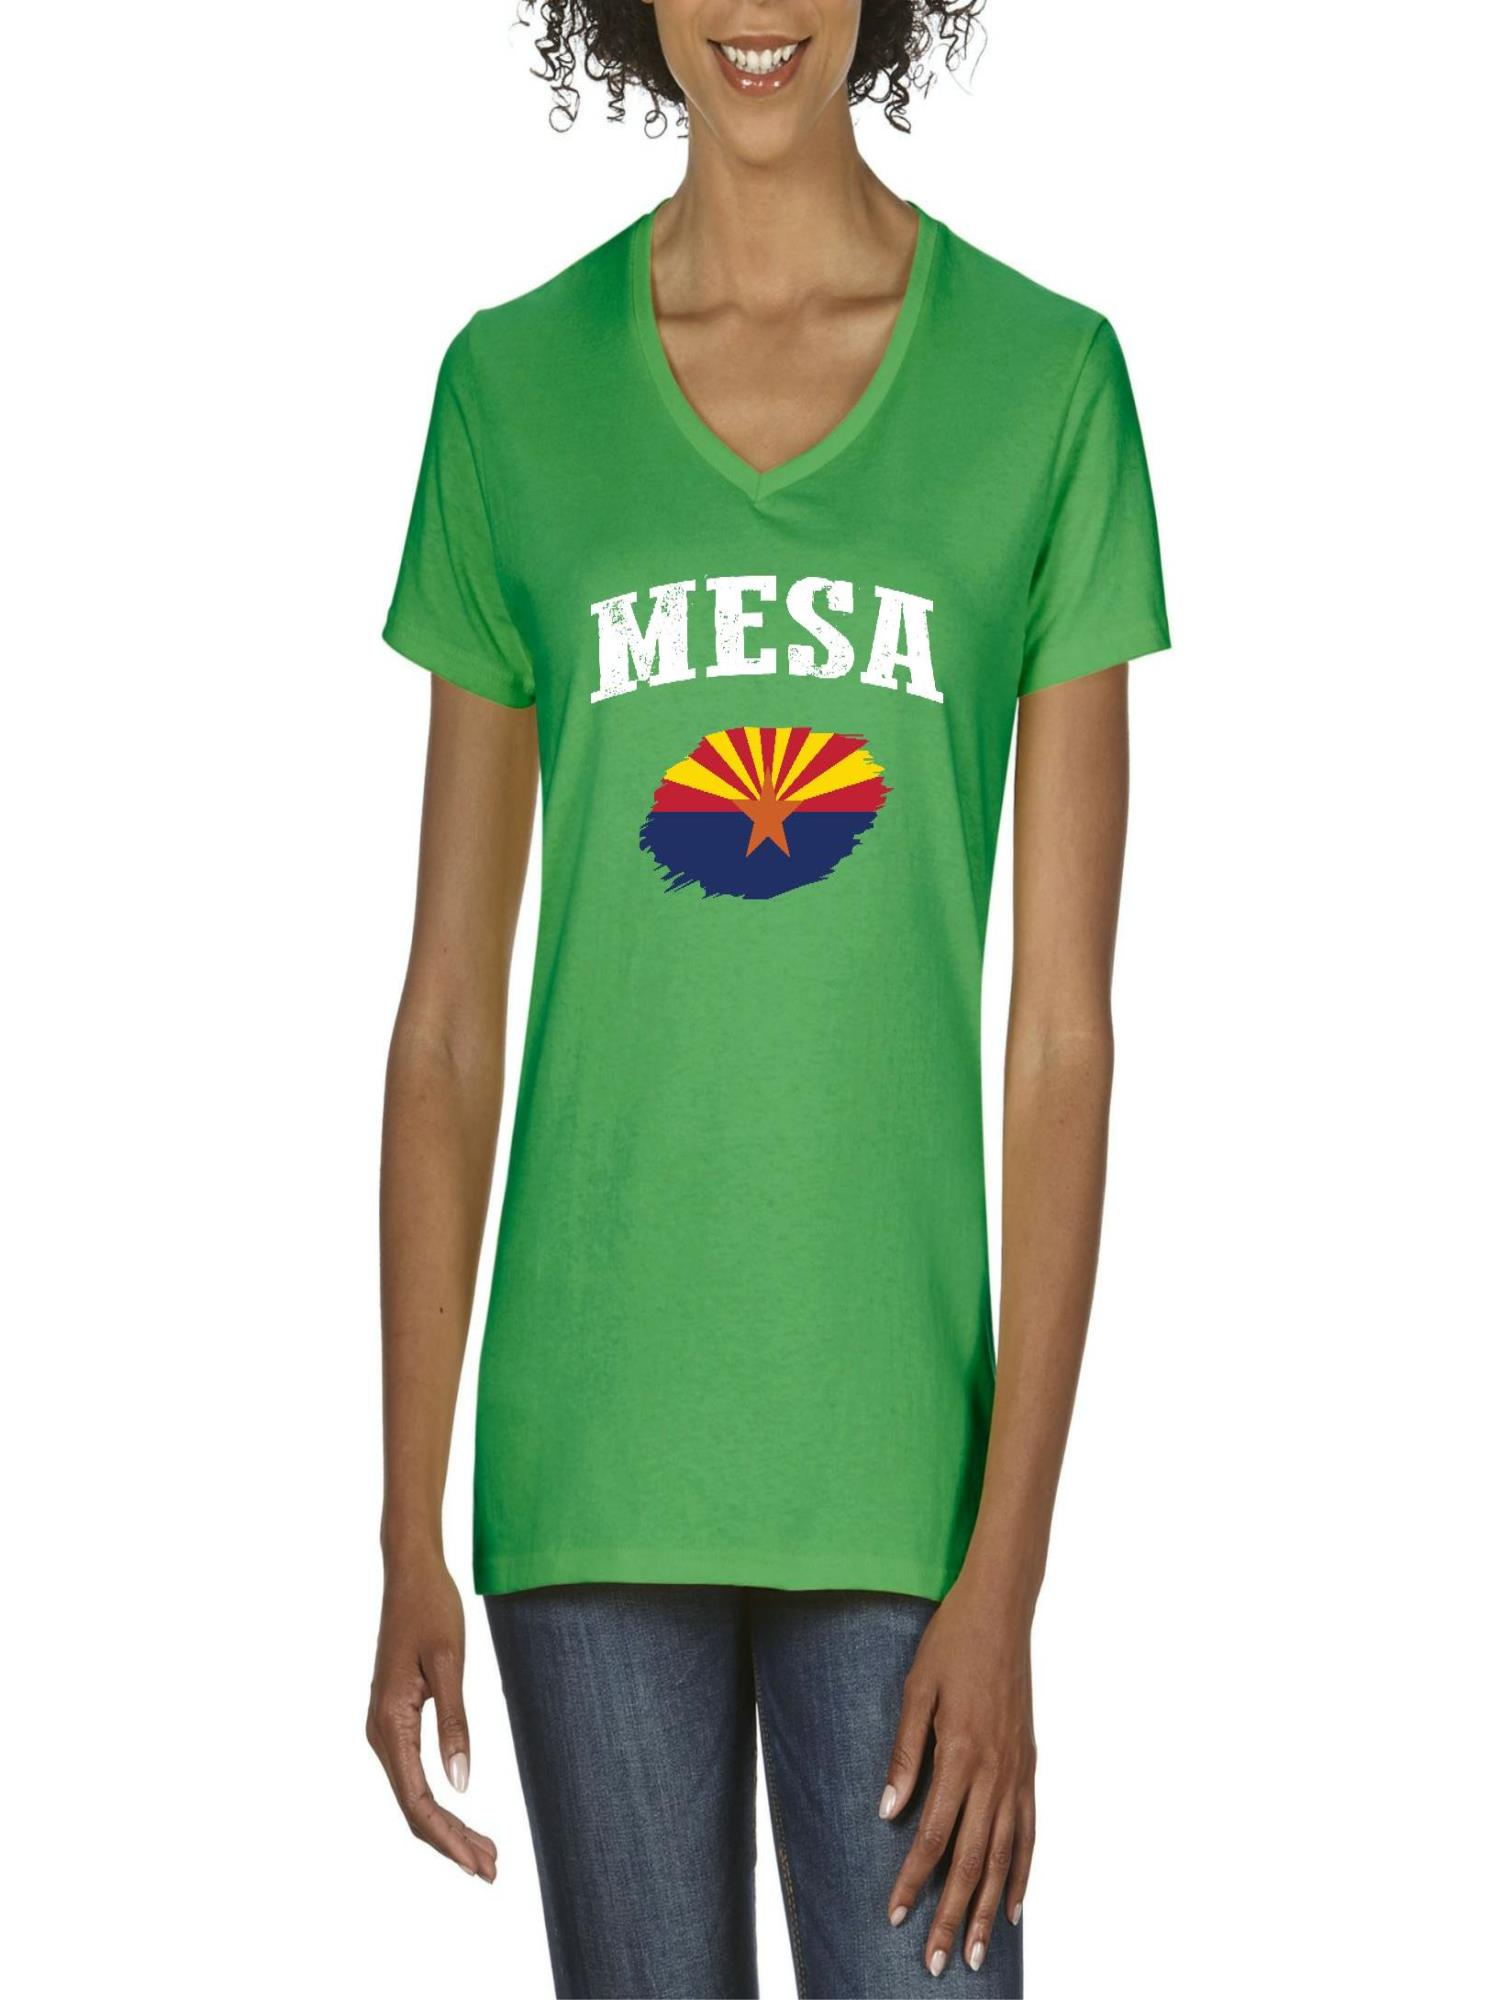 b975e80b3c Normal is Boring - Mesa Arizona Women's V-Neck T-Shirt Tee Clothes -  Walmart.com